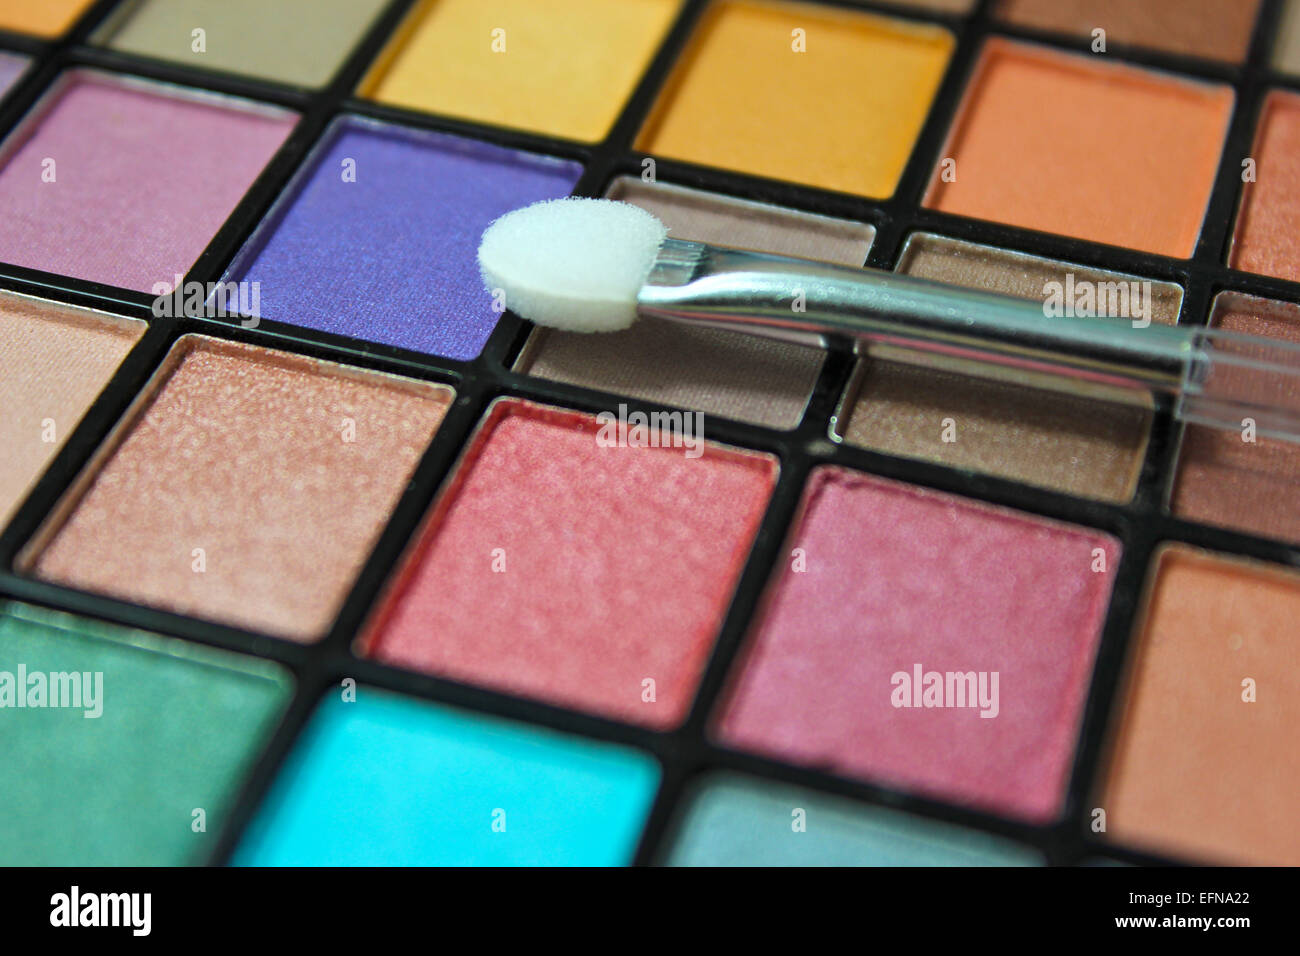 Colorful eyeshadow make up palette. Focus on make up appicator. - Stock Image